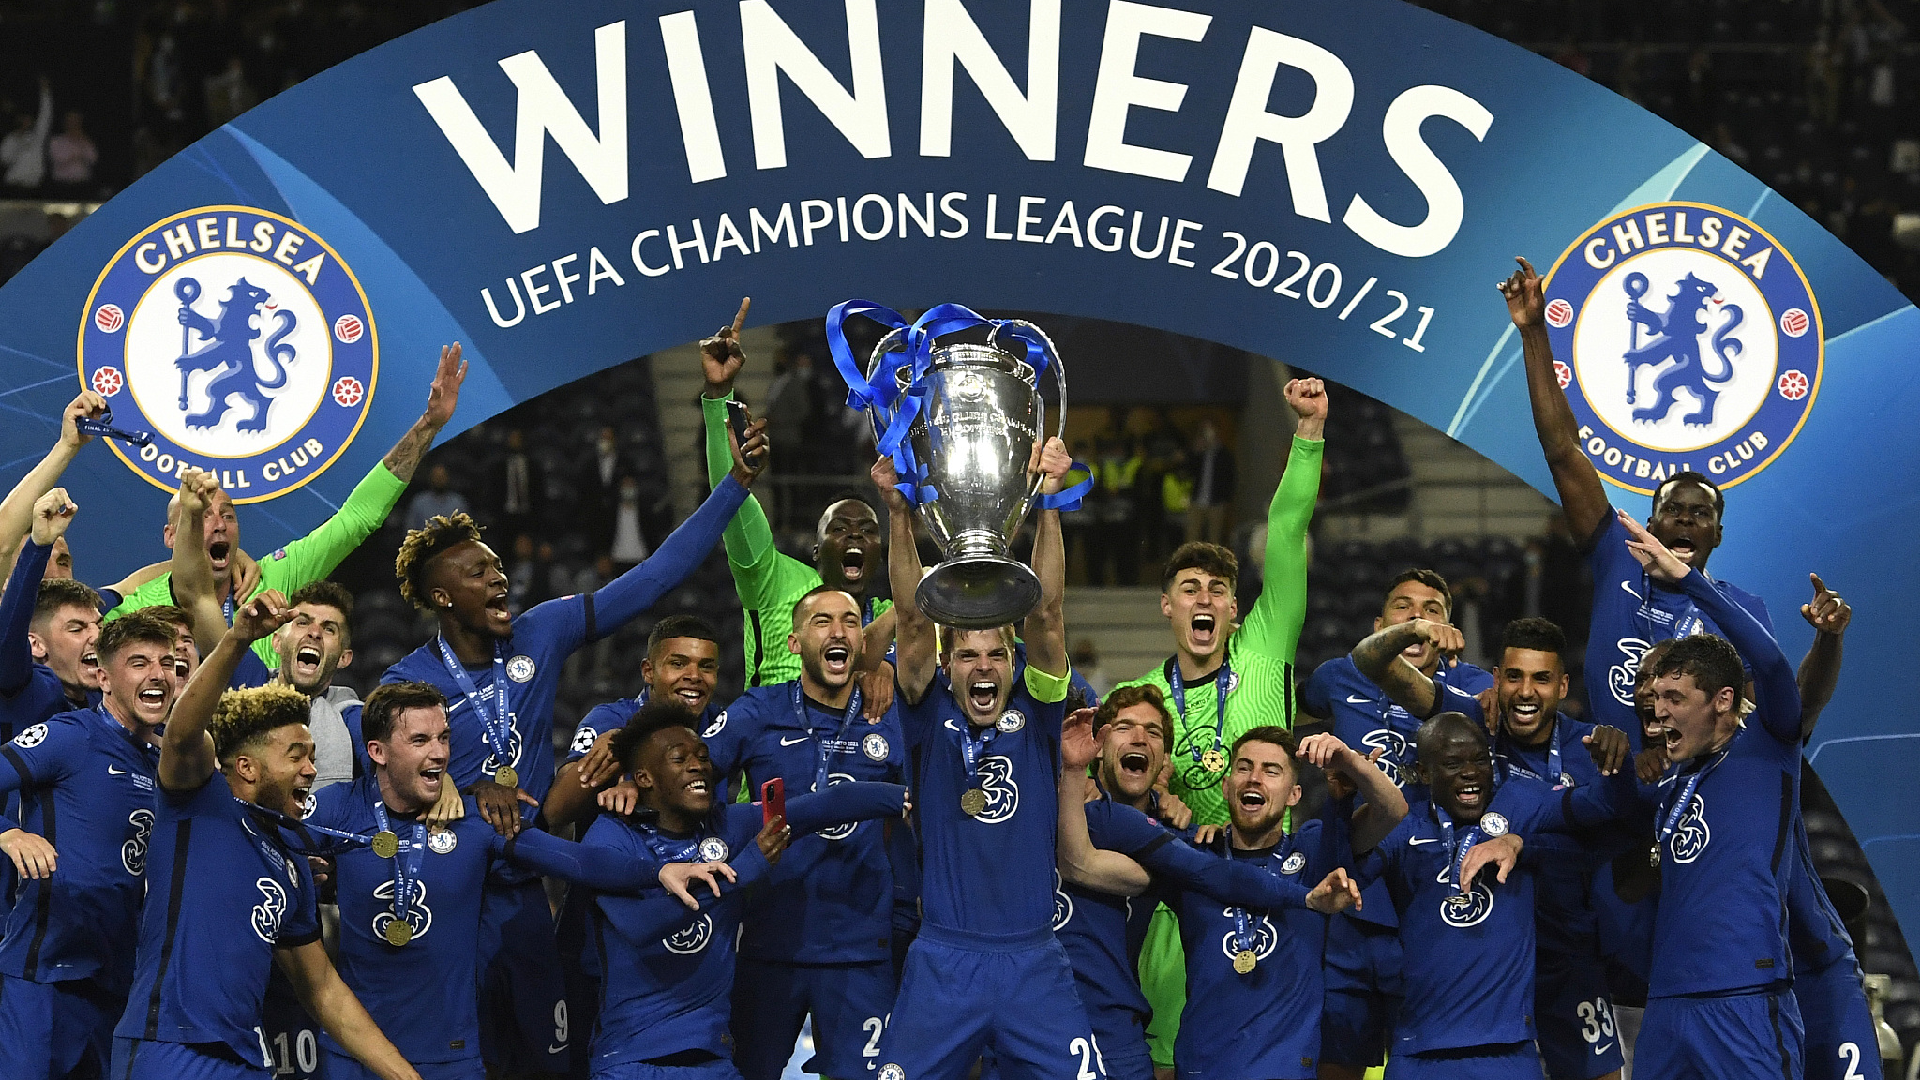 Chelsea beat Man City to win Champions League for 2nd time   CGTN 1920x1080